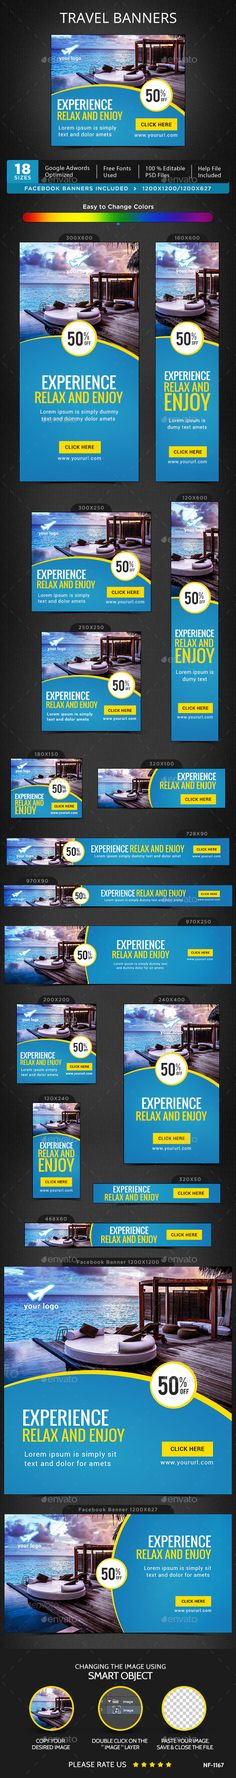 Travel Banners Template PSD. Download here: http://graphicriver.net/item/travel-banners/15394498?ref=ksioks